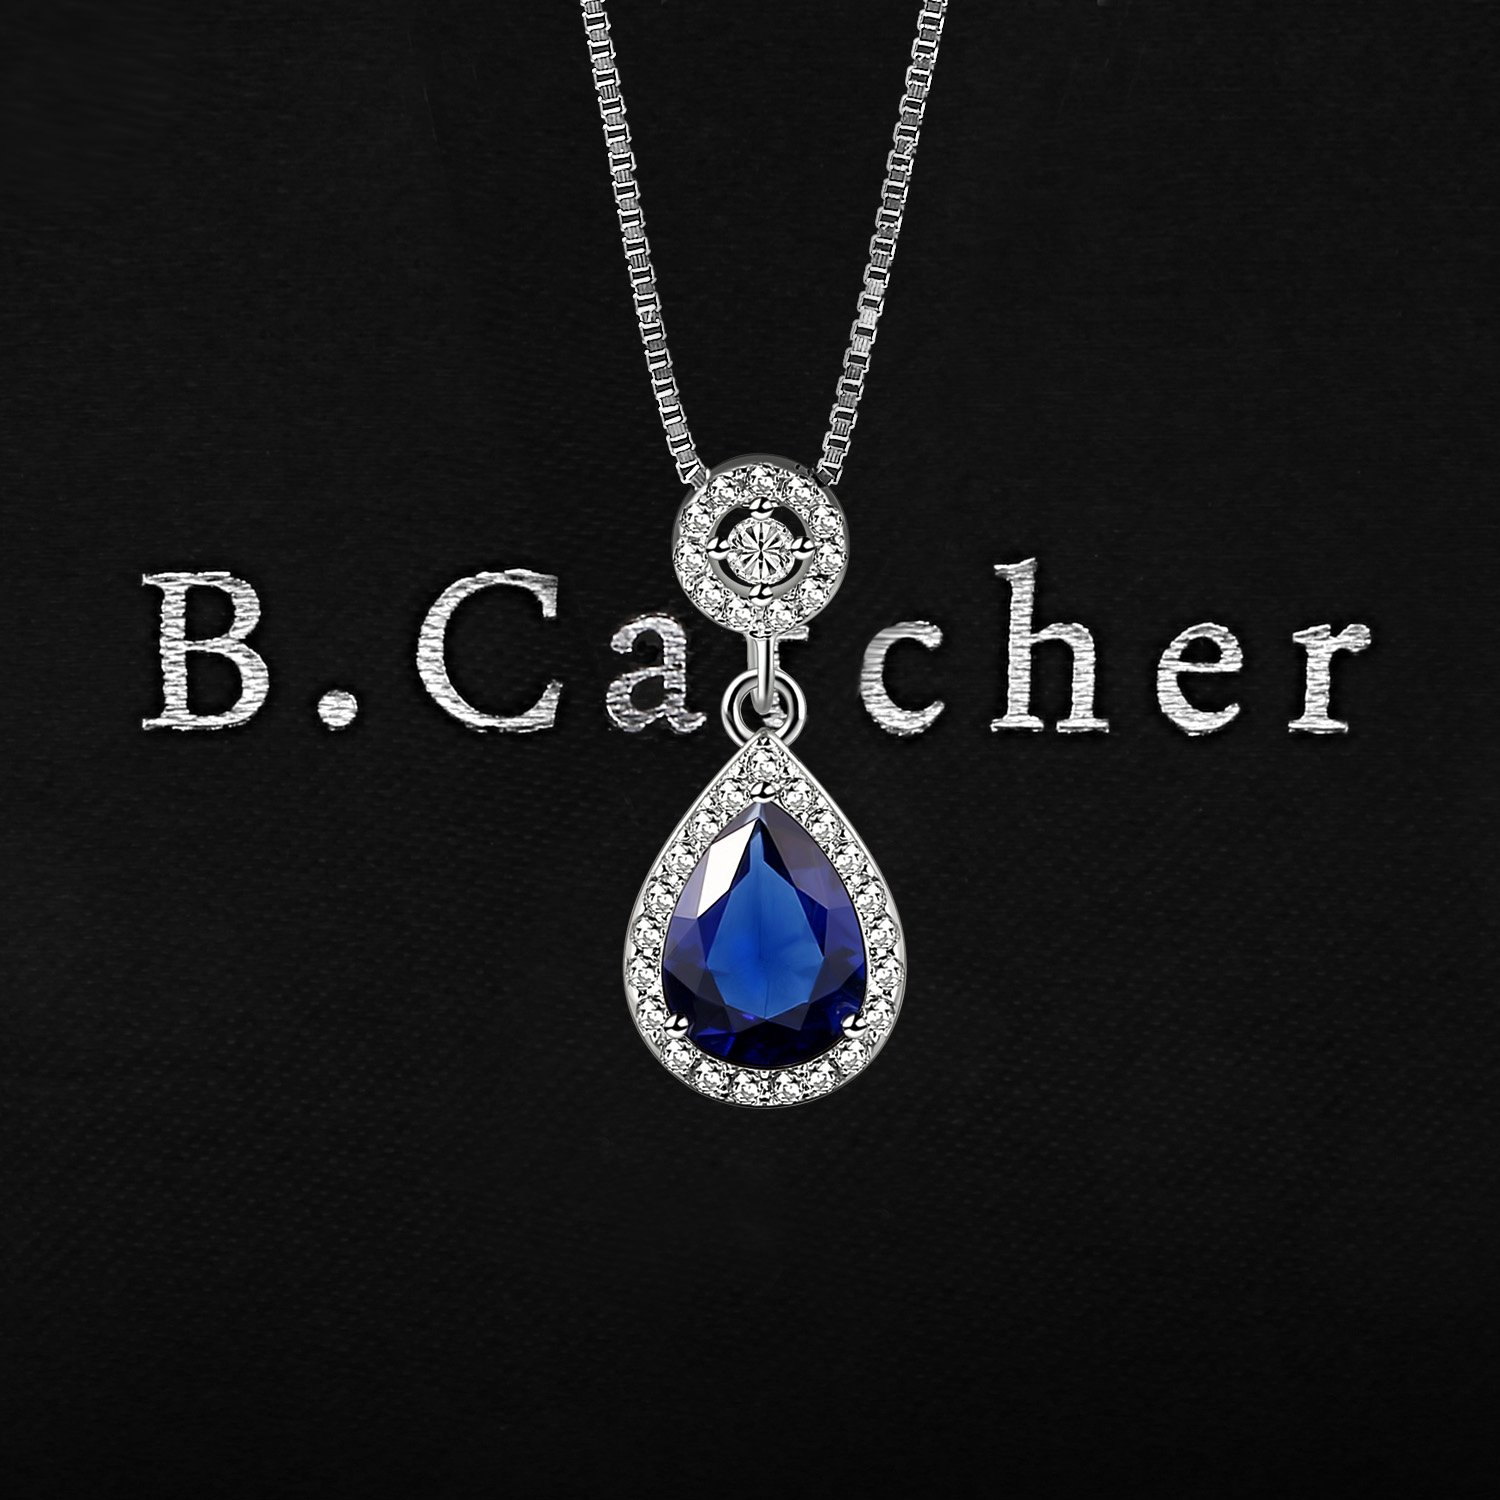 Jewelry & Accessories Active Natural Blue Topaz Gem Pendant S925 Silver Natural Gemstone Pendant Necklace Trendy Classic Diana Round Women Girl Gift Jewelry Wide Selection; Fine Jewelry